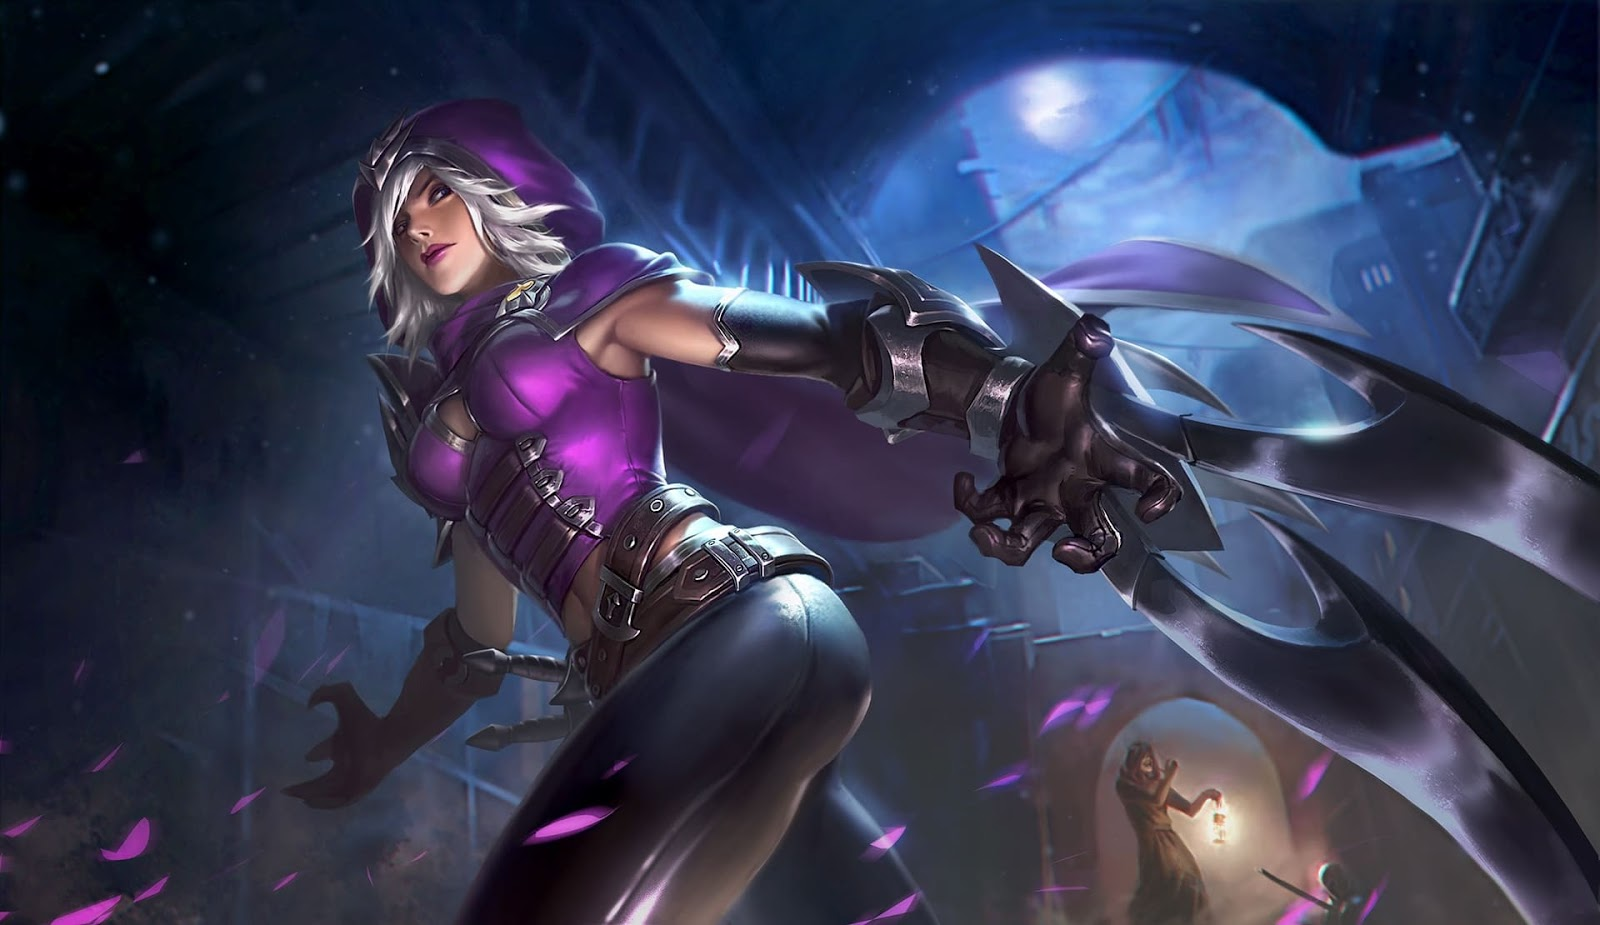 Wallpaper Natalia Glass Blade Skin Mobile Legends HD for PC